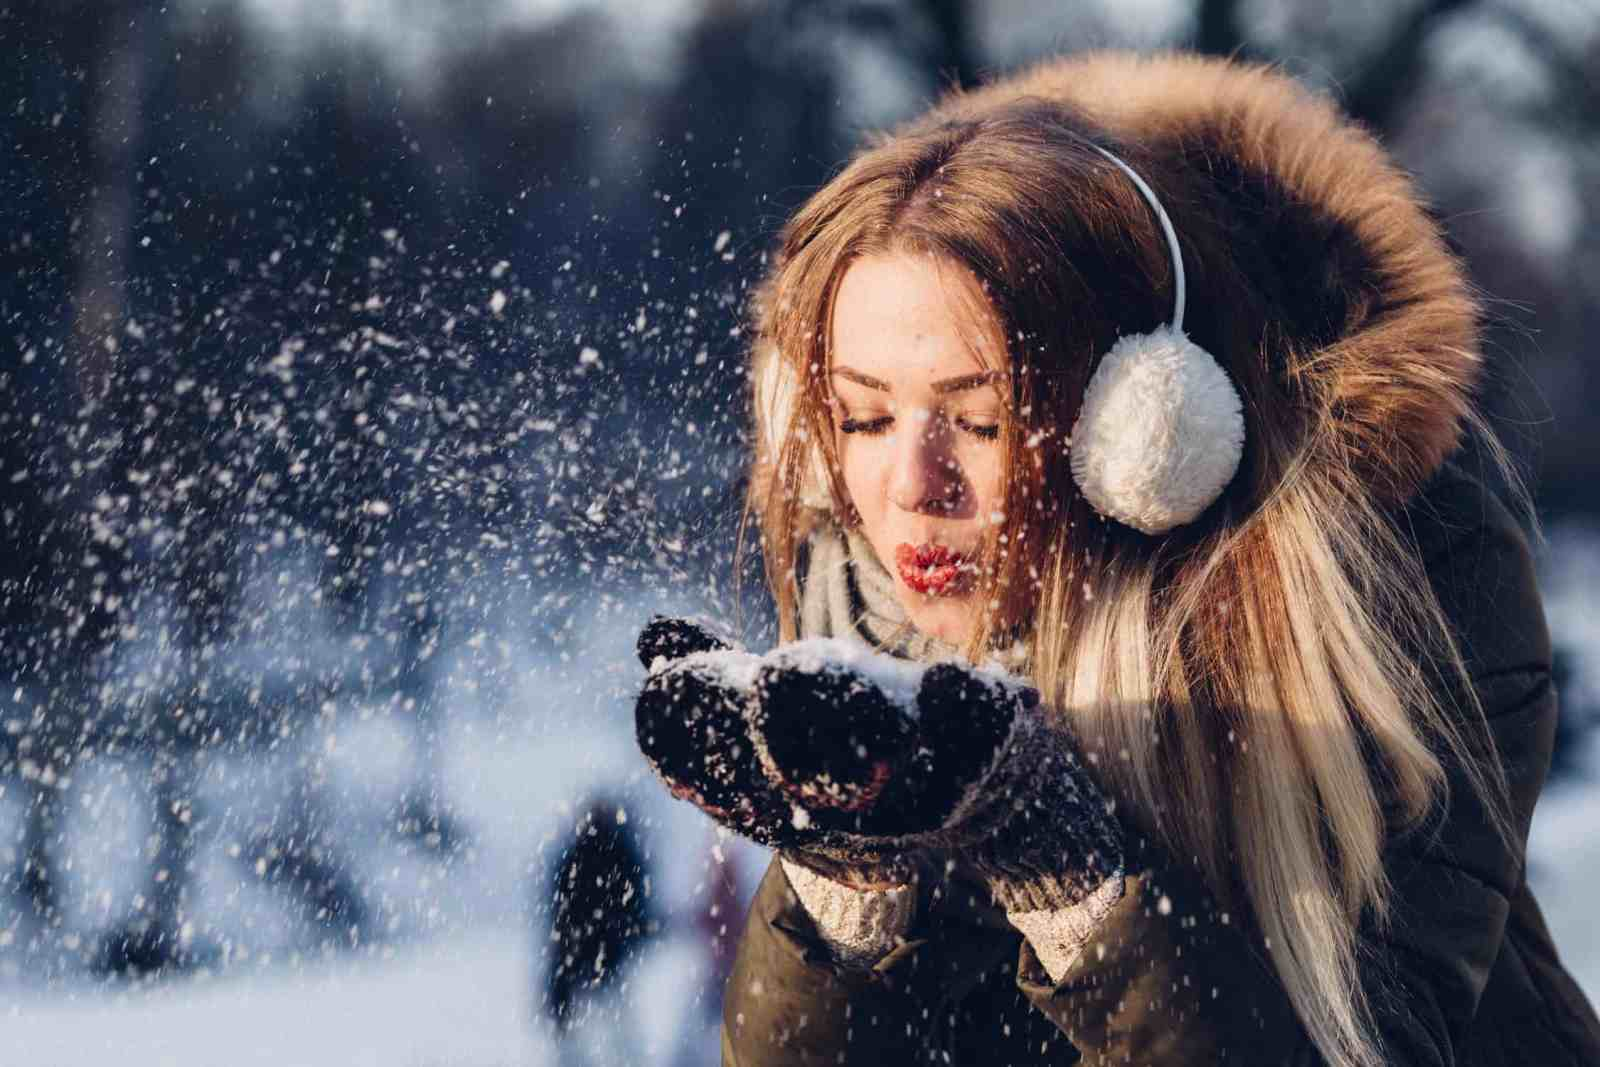 These winter vacation destinations are perfect for you if you're in love with the snow and cold weather! Take a trip to these winter wonderlands!